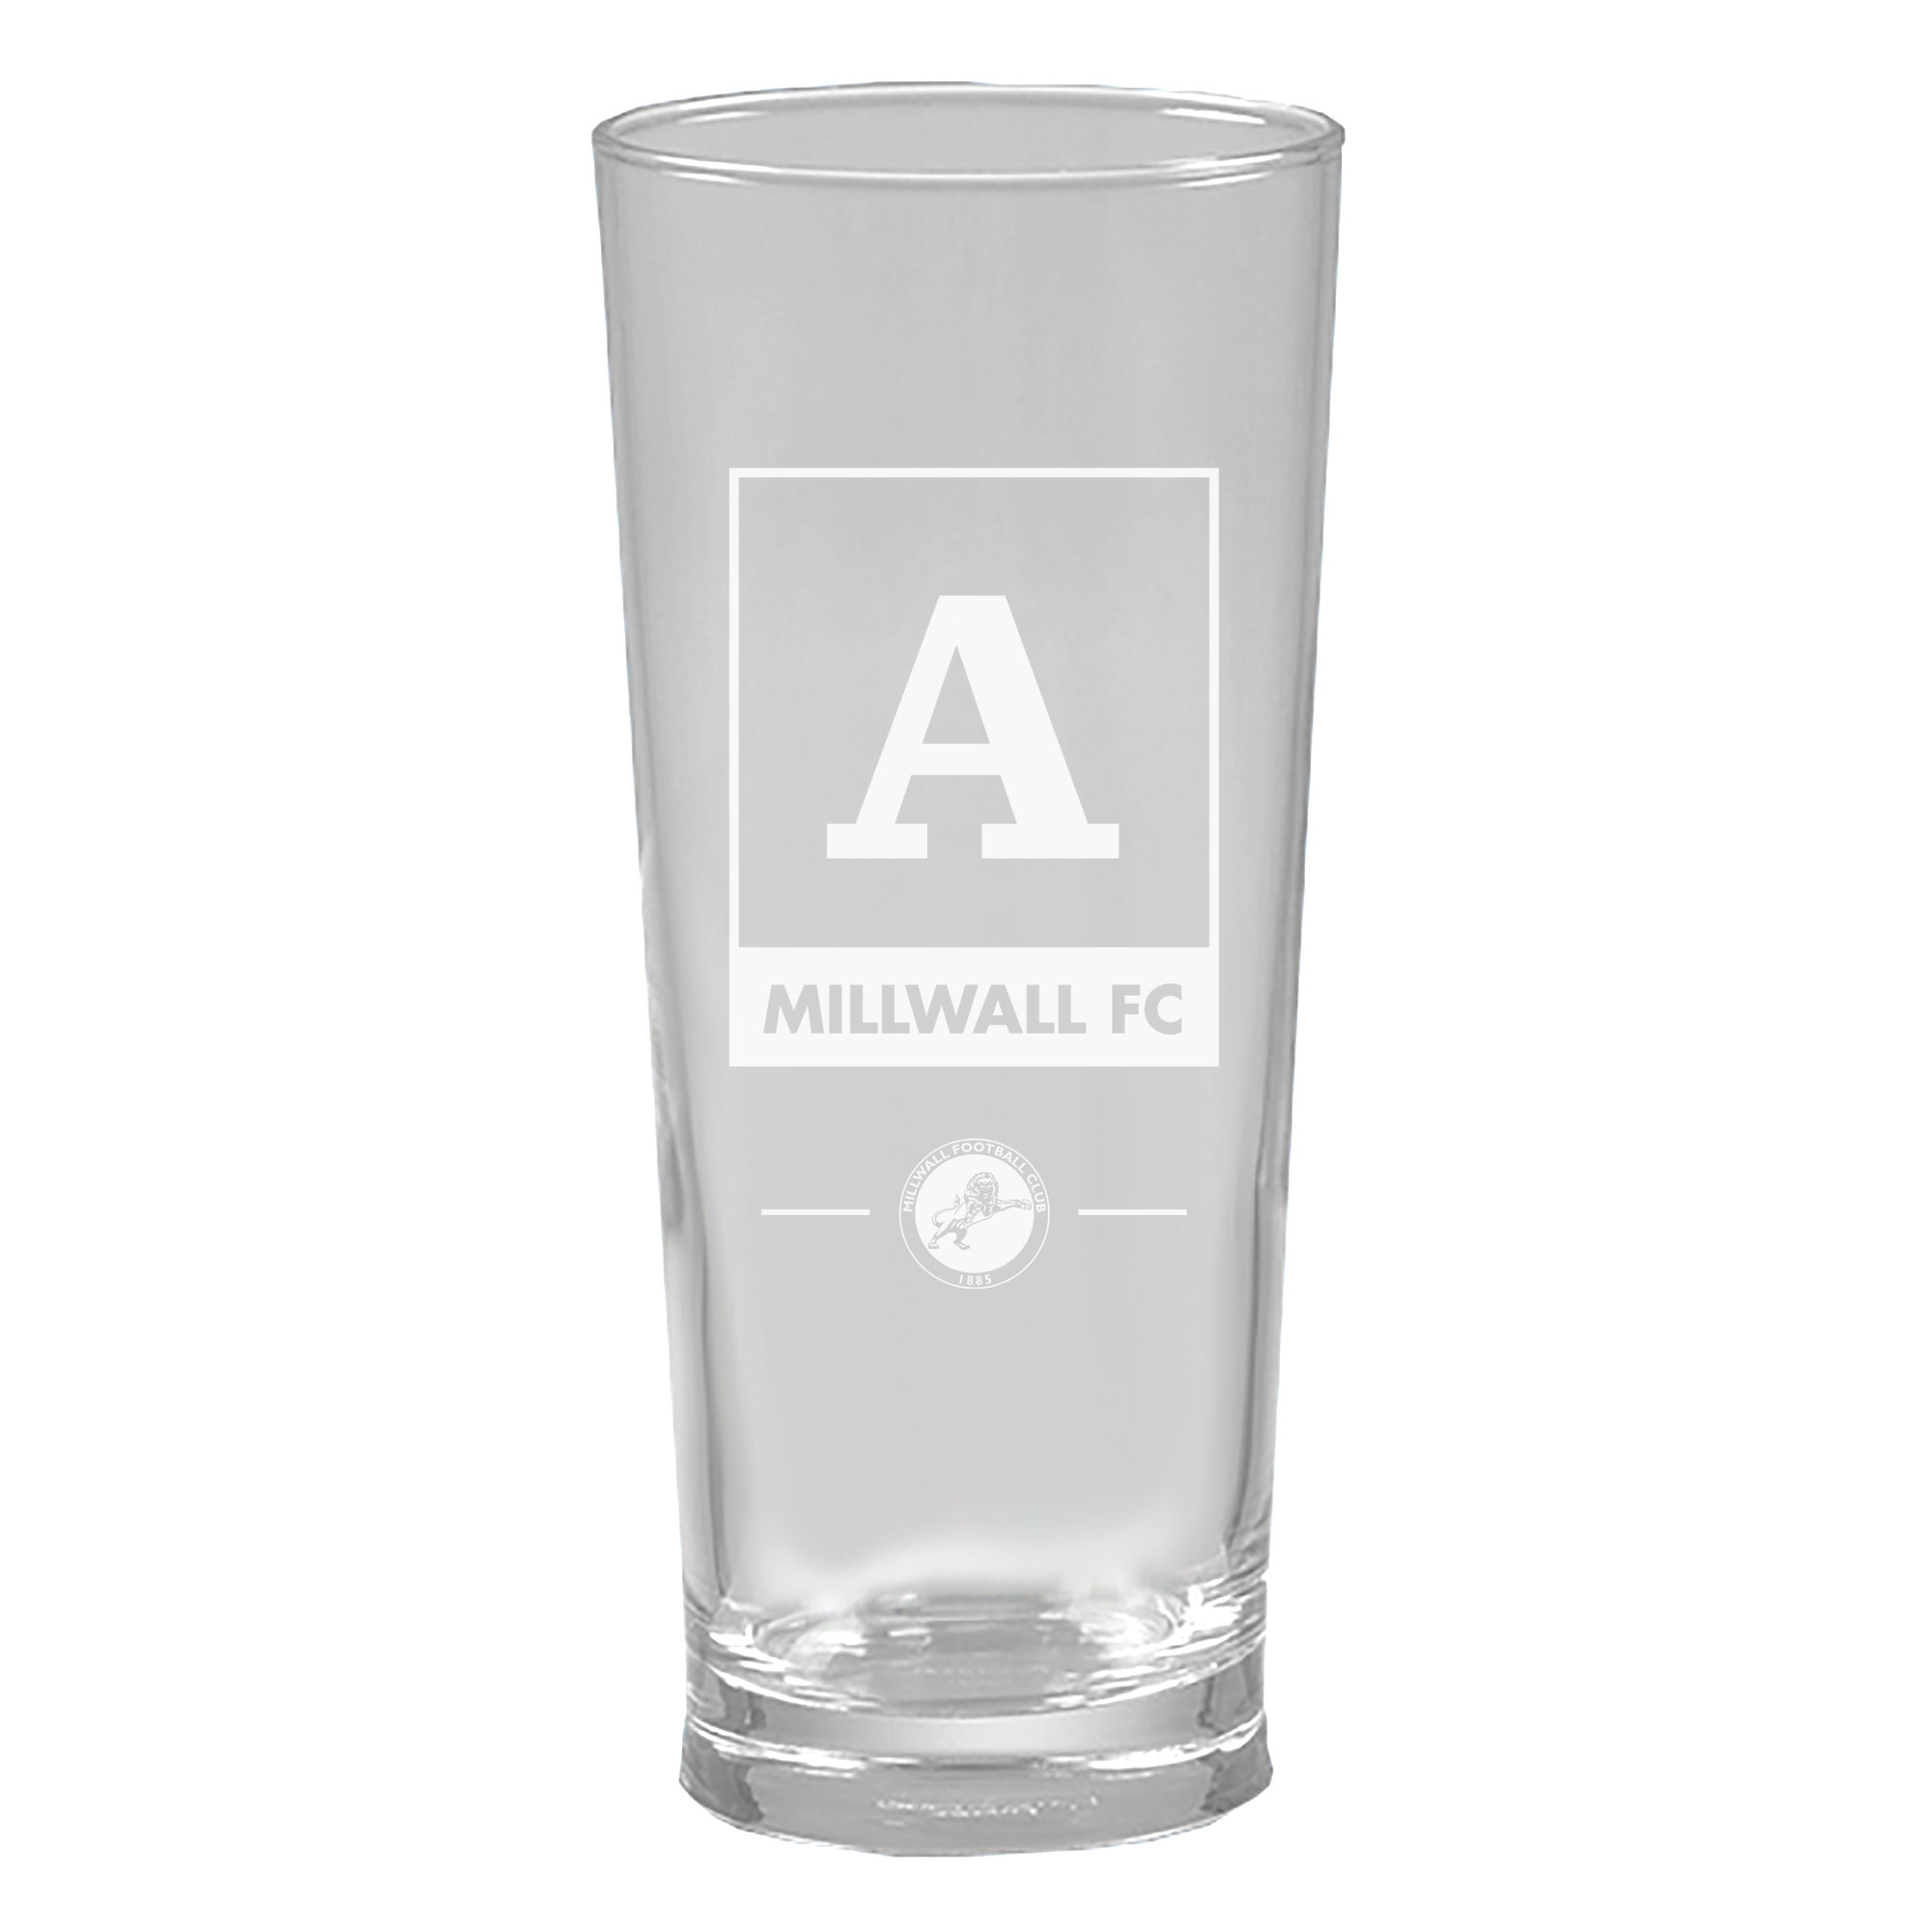 Millwall Monogram Straight Sided Beer Glass